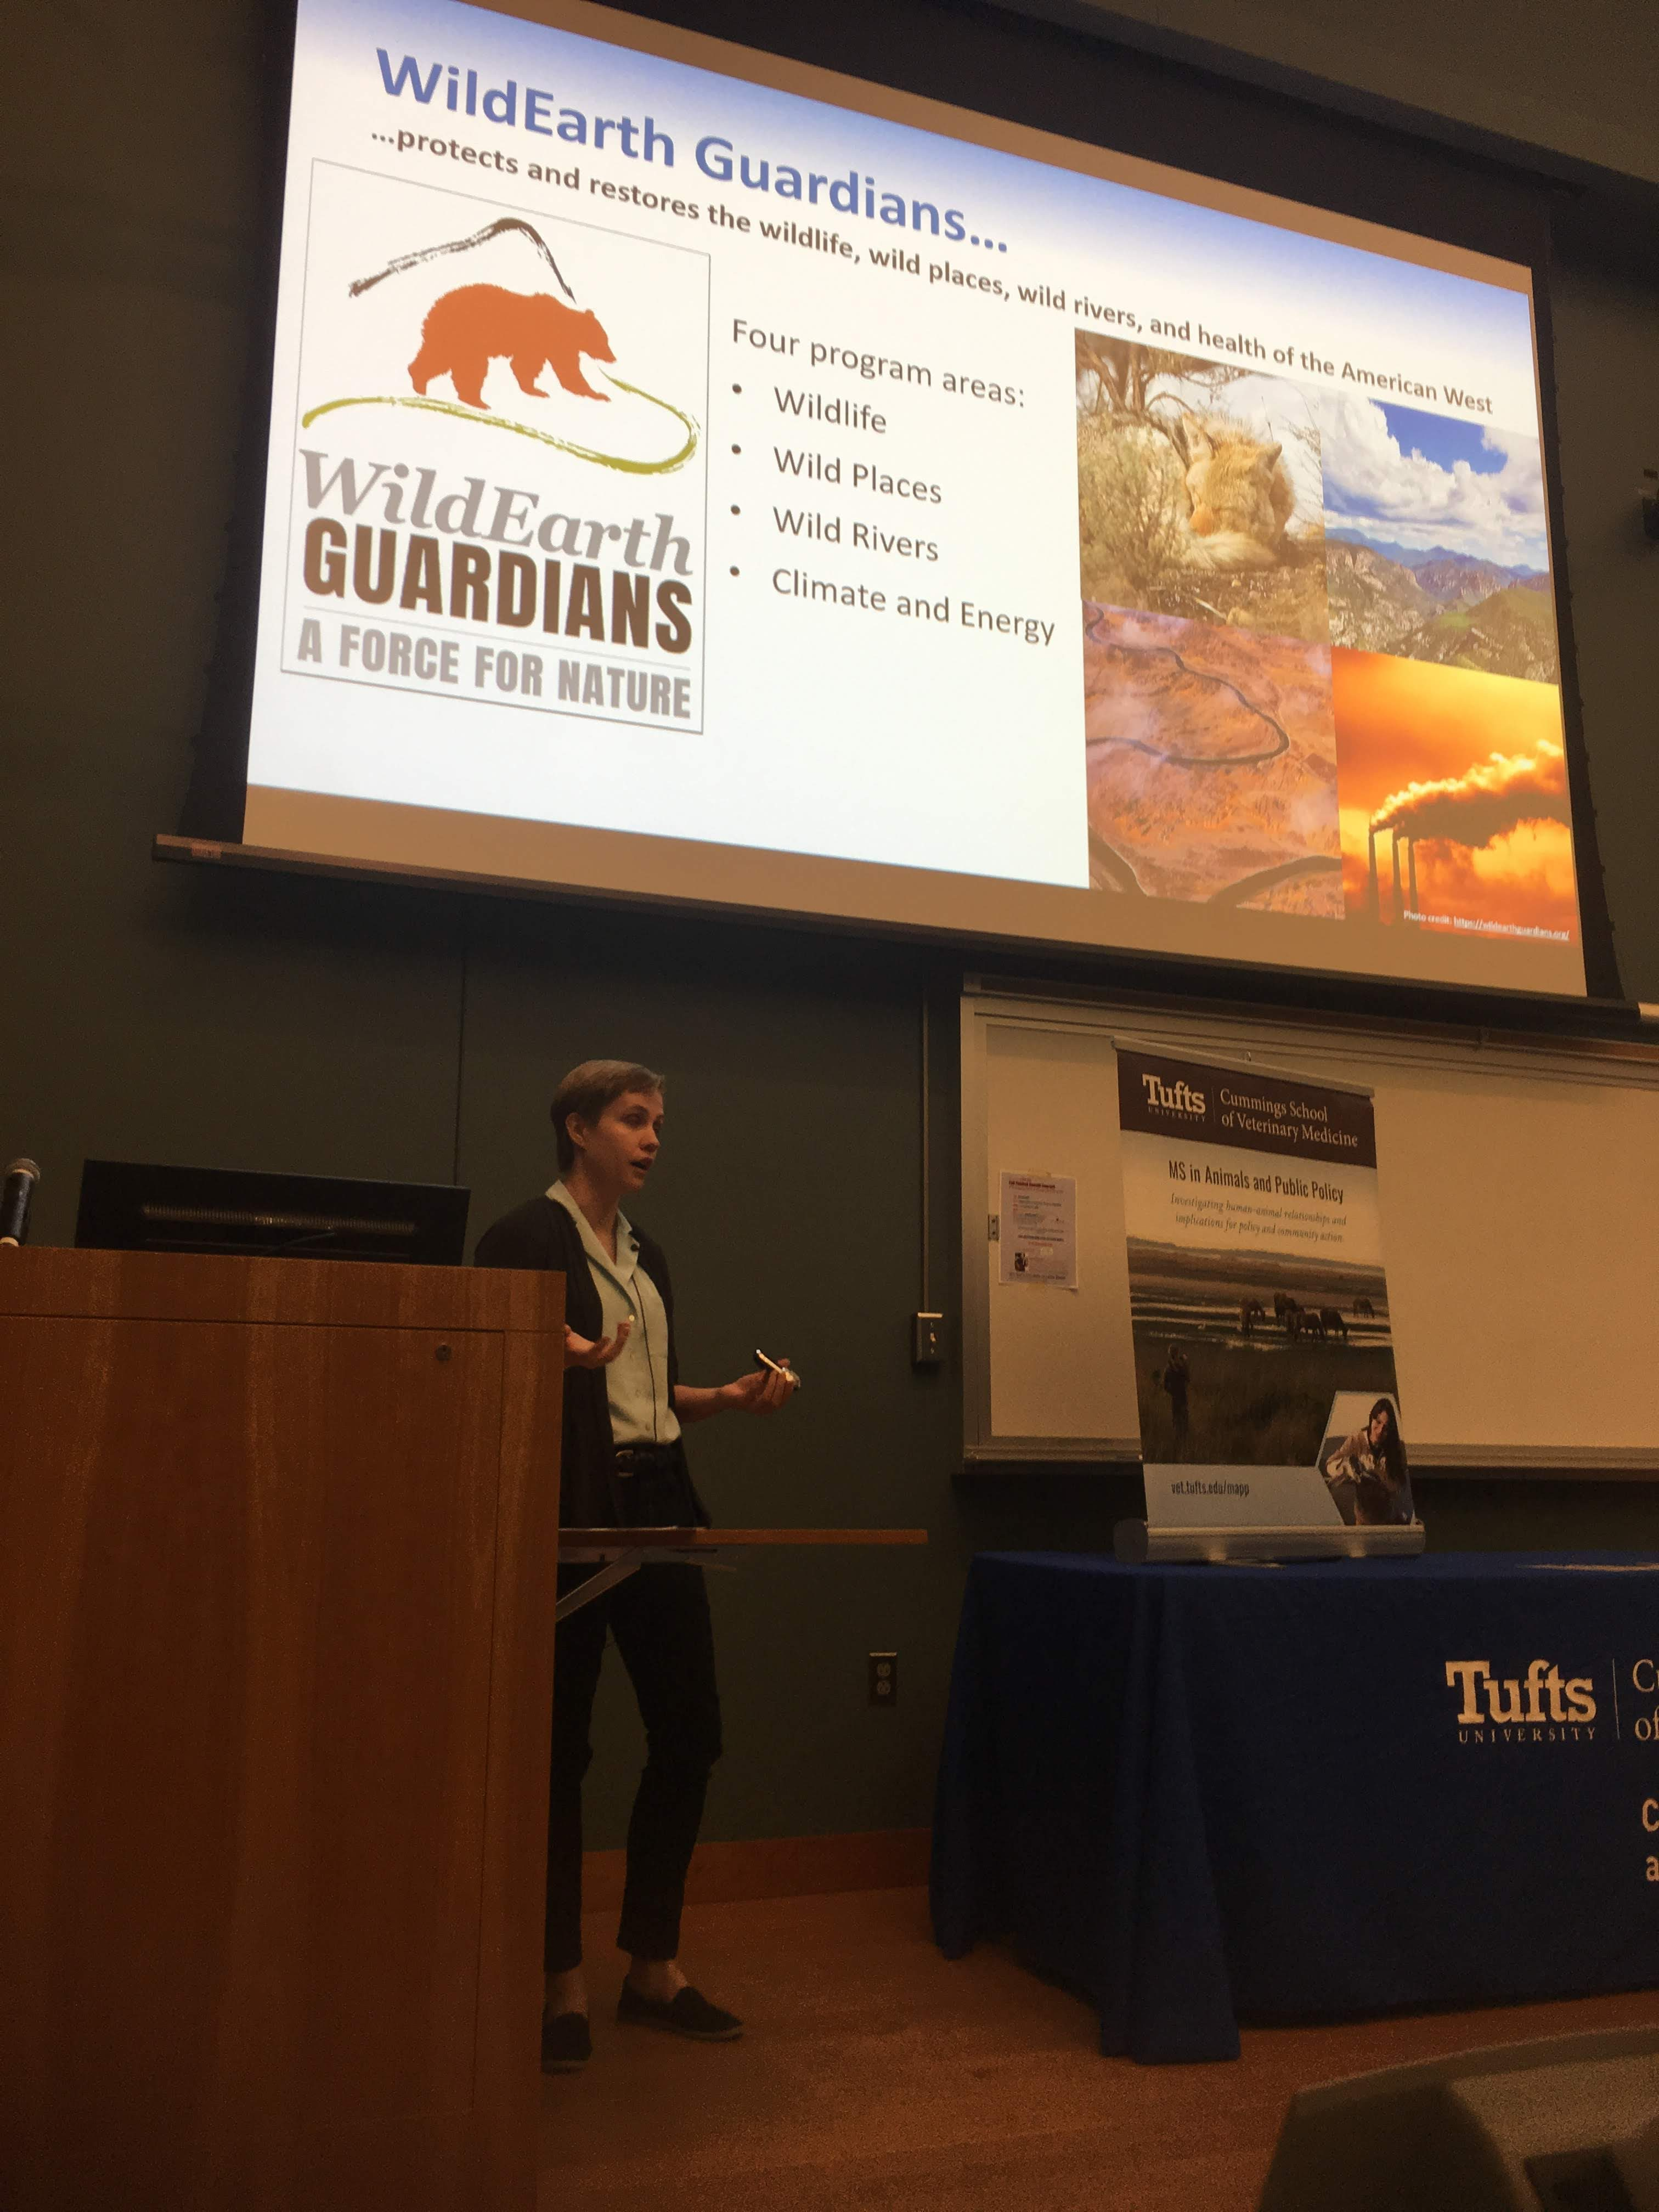 Mikaila Wireman presenting at the MS in Animals and Public Policy Student Externship and Research Poster Presentations